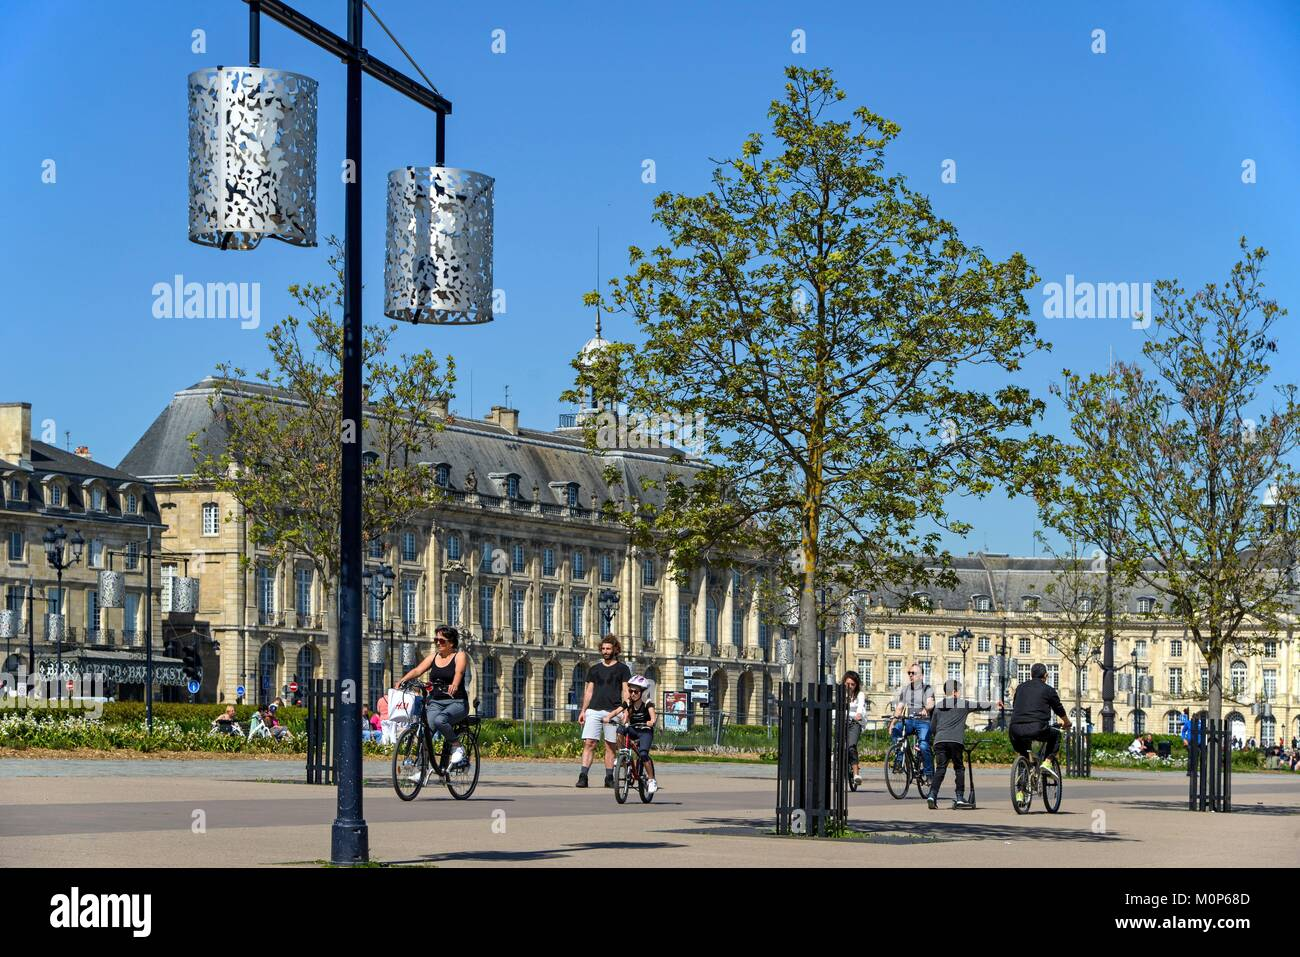 France,Gironde,Bordeaux,Quay of the Douane,goes and comes from cyclist on a pedestrian path - Stock Image